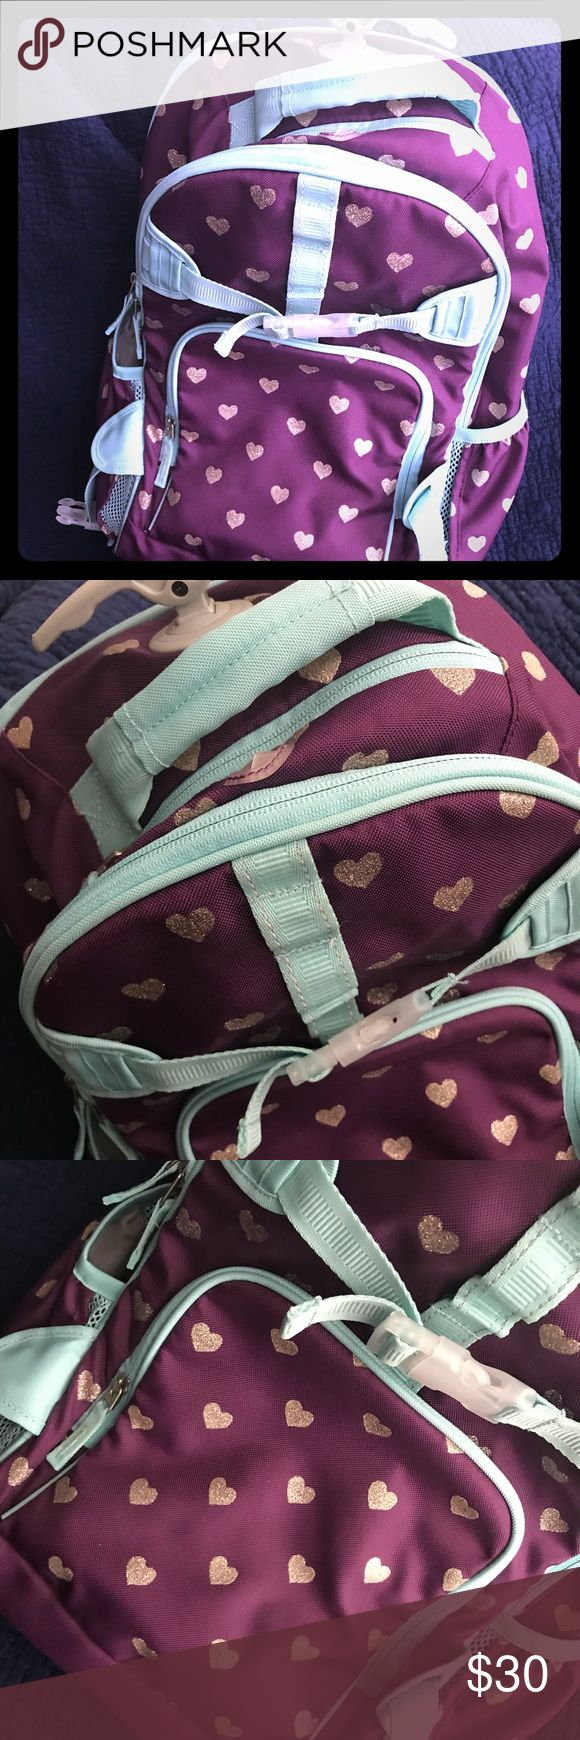 Pottery Barn Kids Rolling Backpack Pottery Barn Kids Rolling Backpack Purple, Silver, and Teal pottery barn kids Accessories Bags